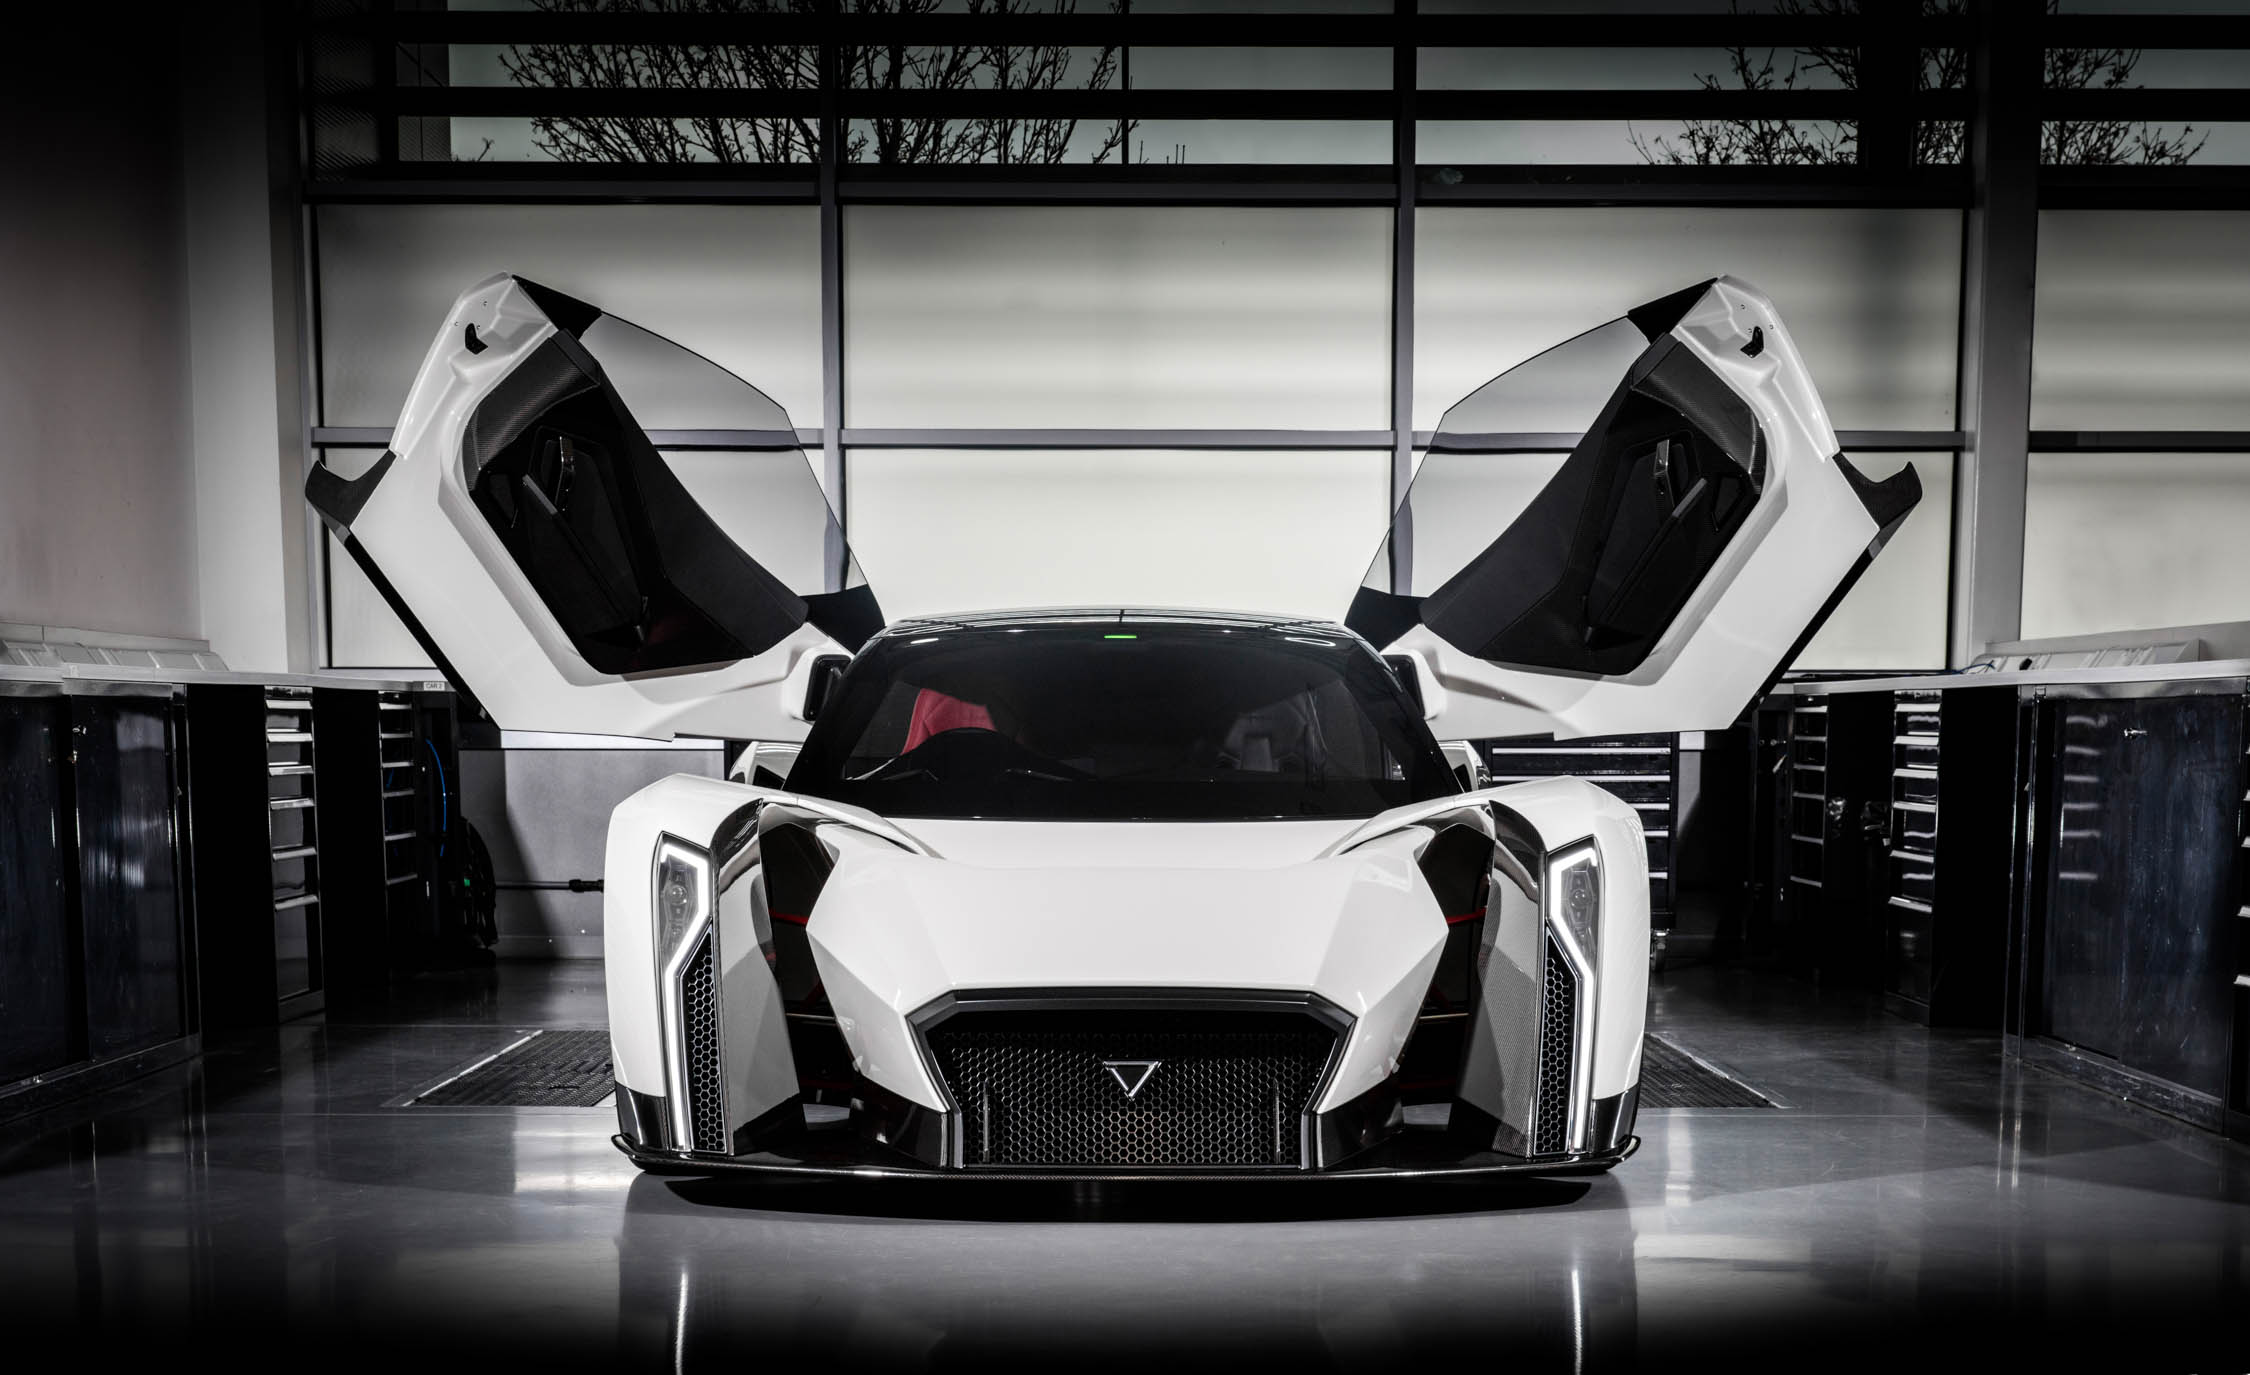 """""""Singapore's First"""" Hypercar Is an EV with Insane Doors, 1500 hp, and an Amazingly Cool Rear Wing"""